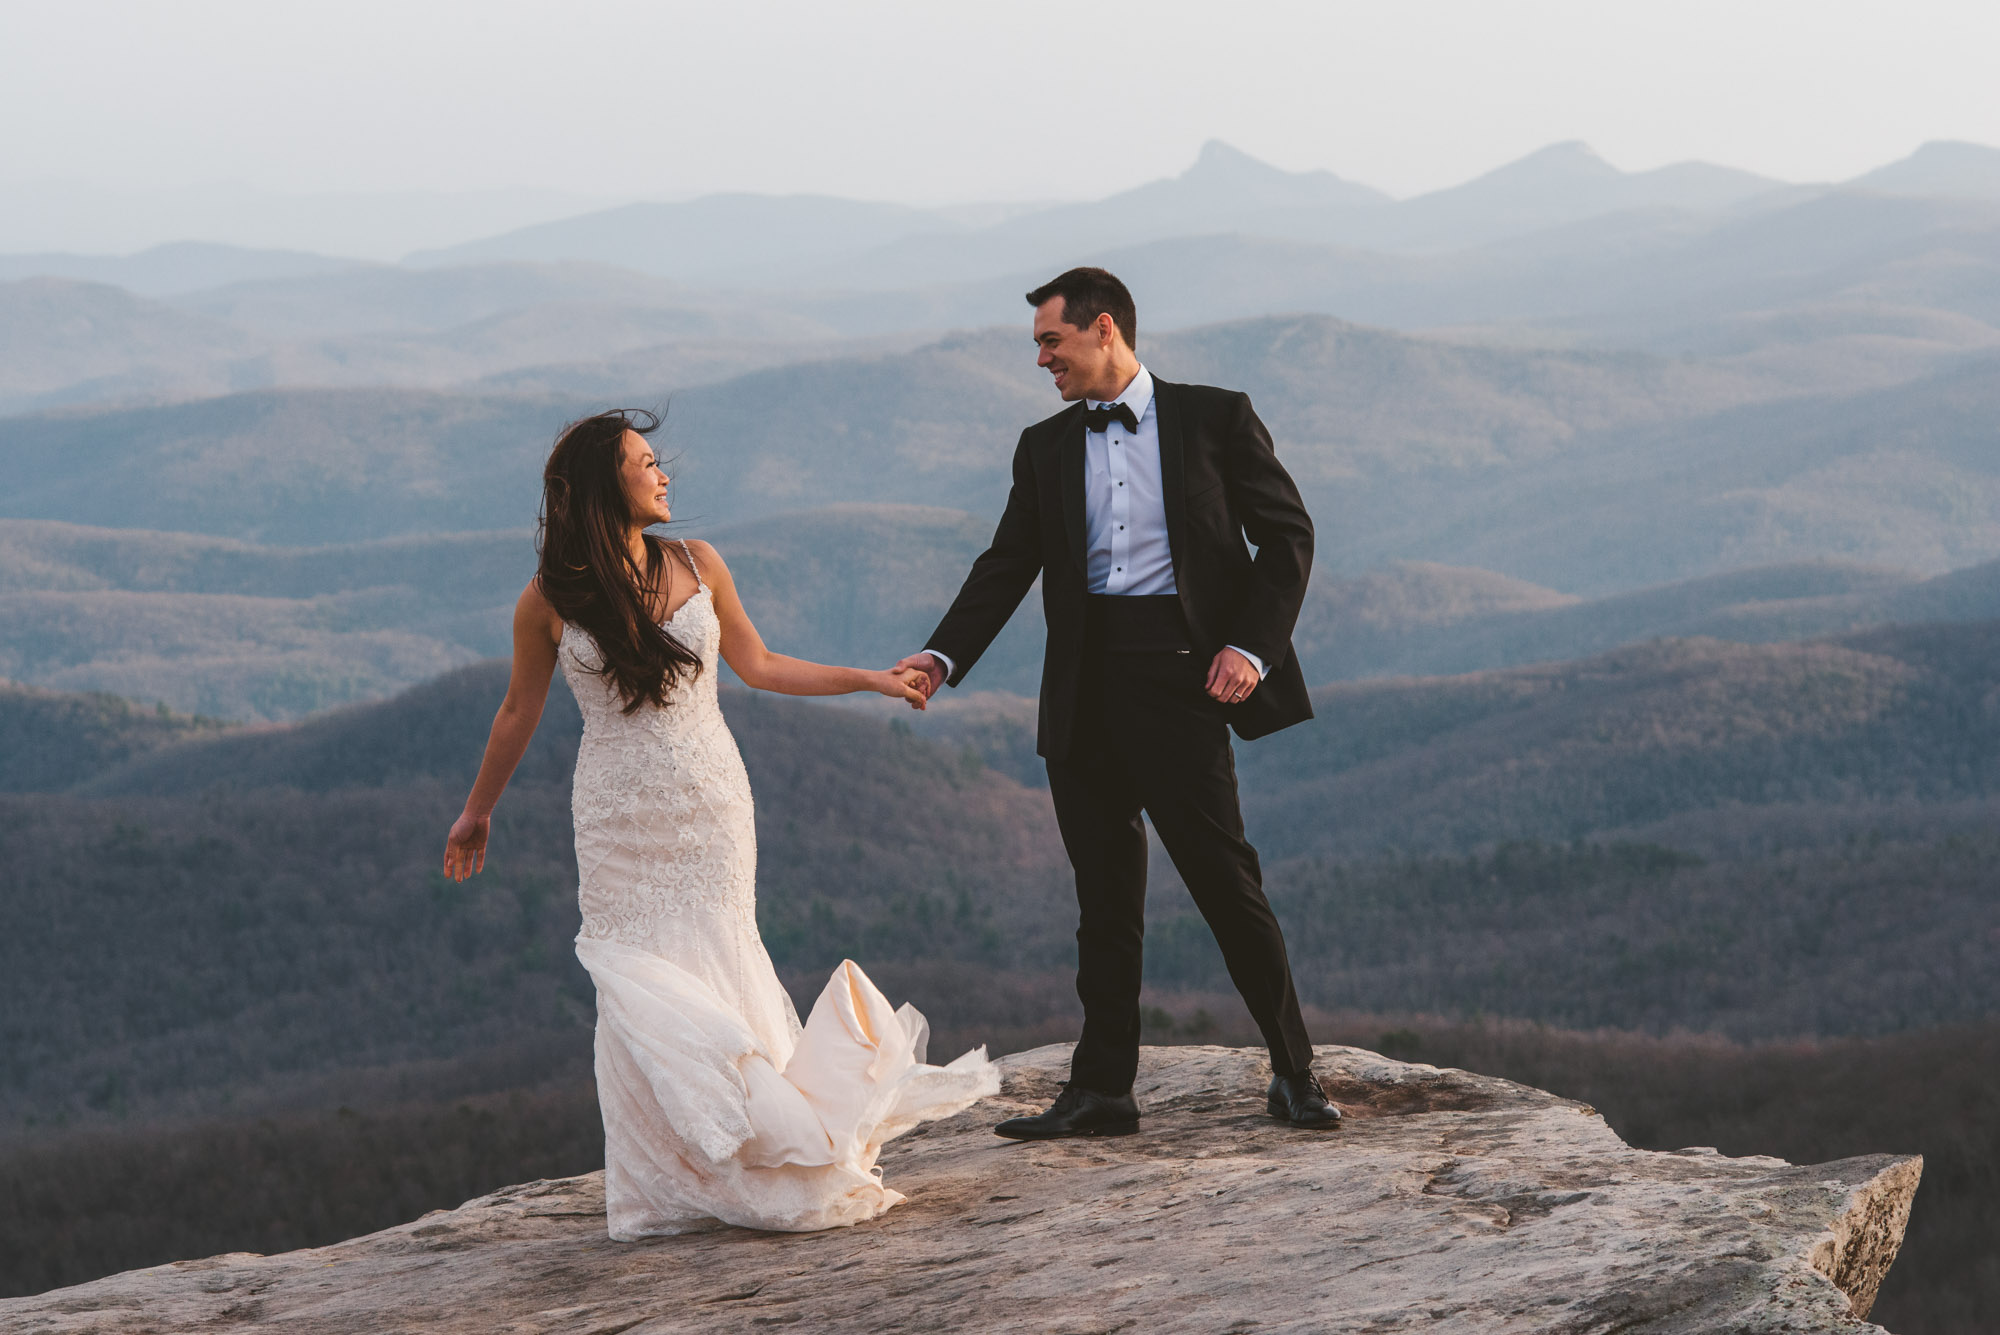 Blue Ridge Parkway Elopement at Rough Ridge near Boone NC